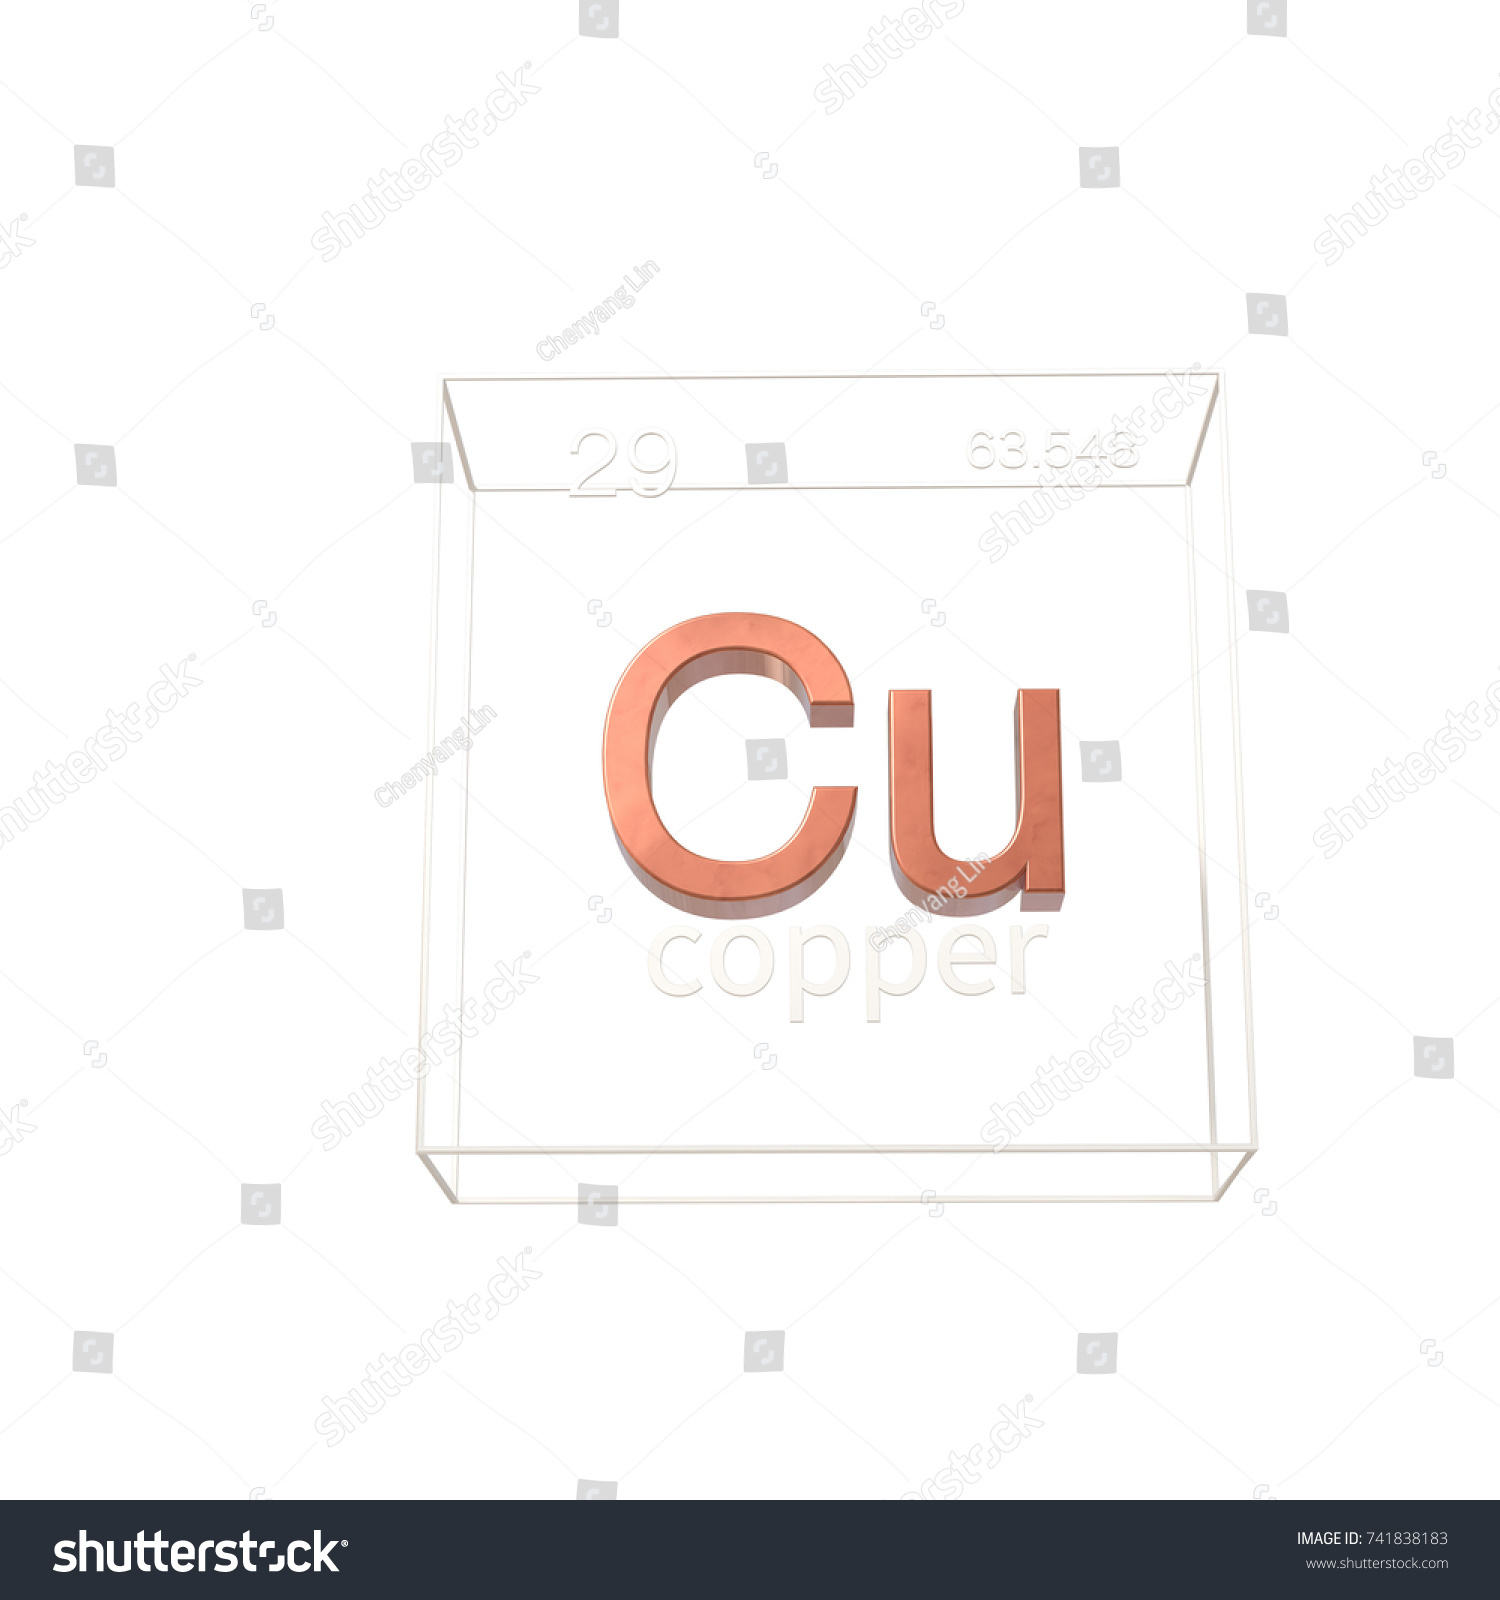 Copper chemical element atomic number atomic stock illustration copper chemical element atomic number and atomic weight chemical element of periodic table buycottarizona